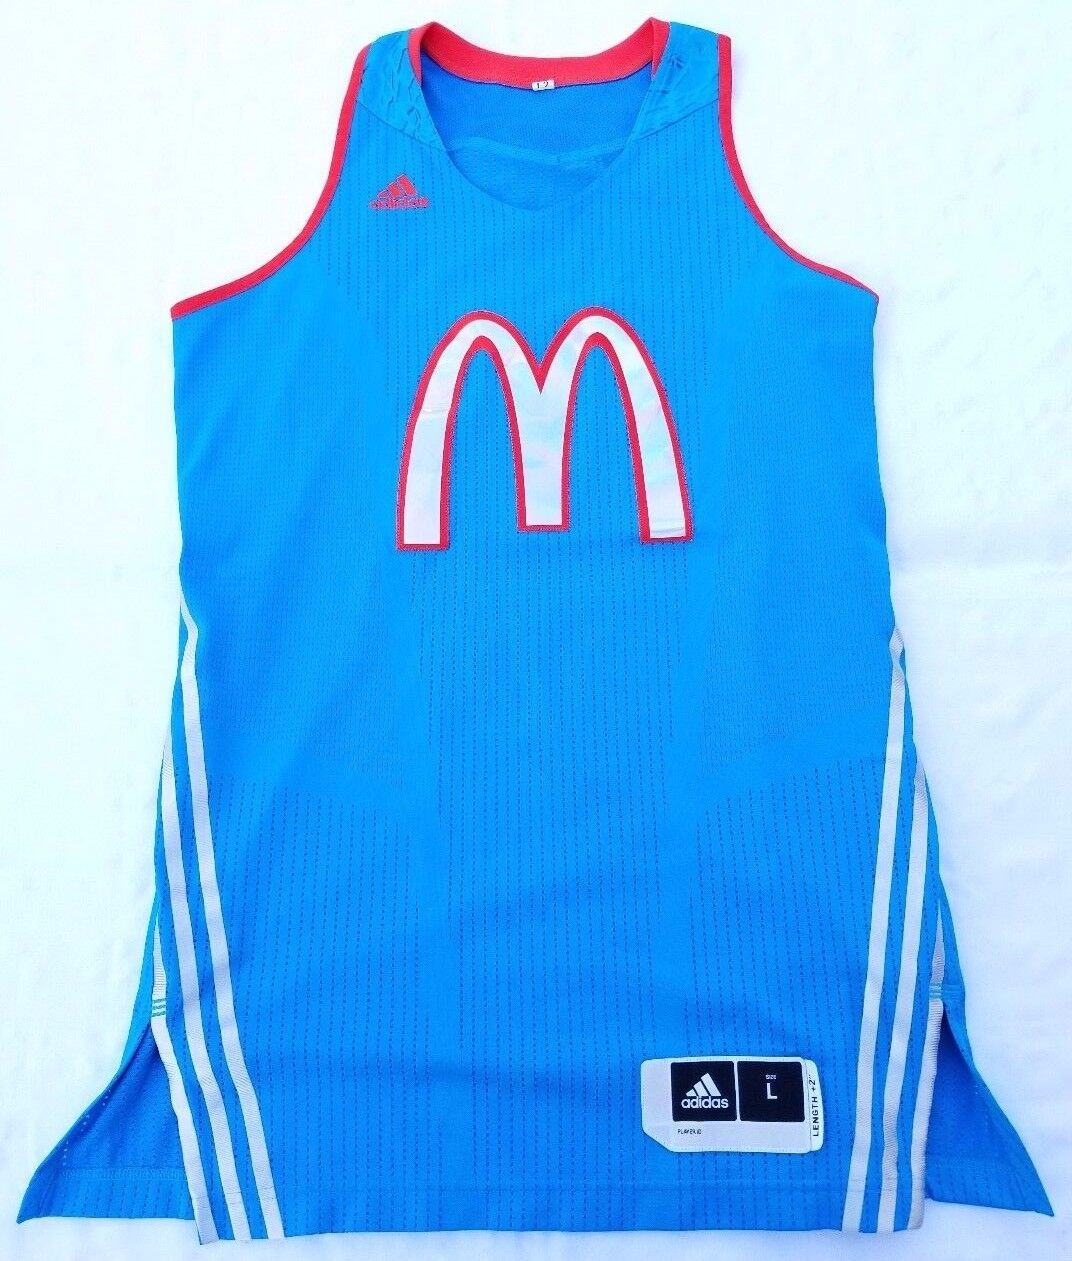 2012 McDonald's All-American Games jersey women sz L +2 length Adidas bluee red